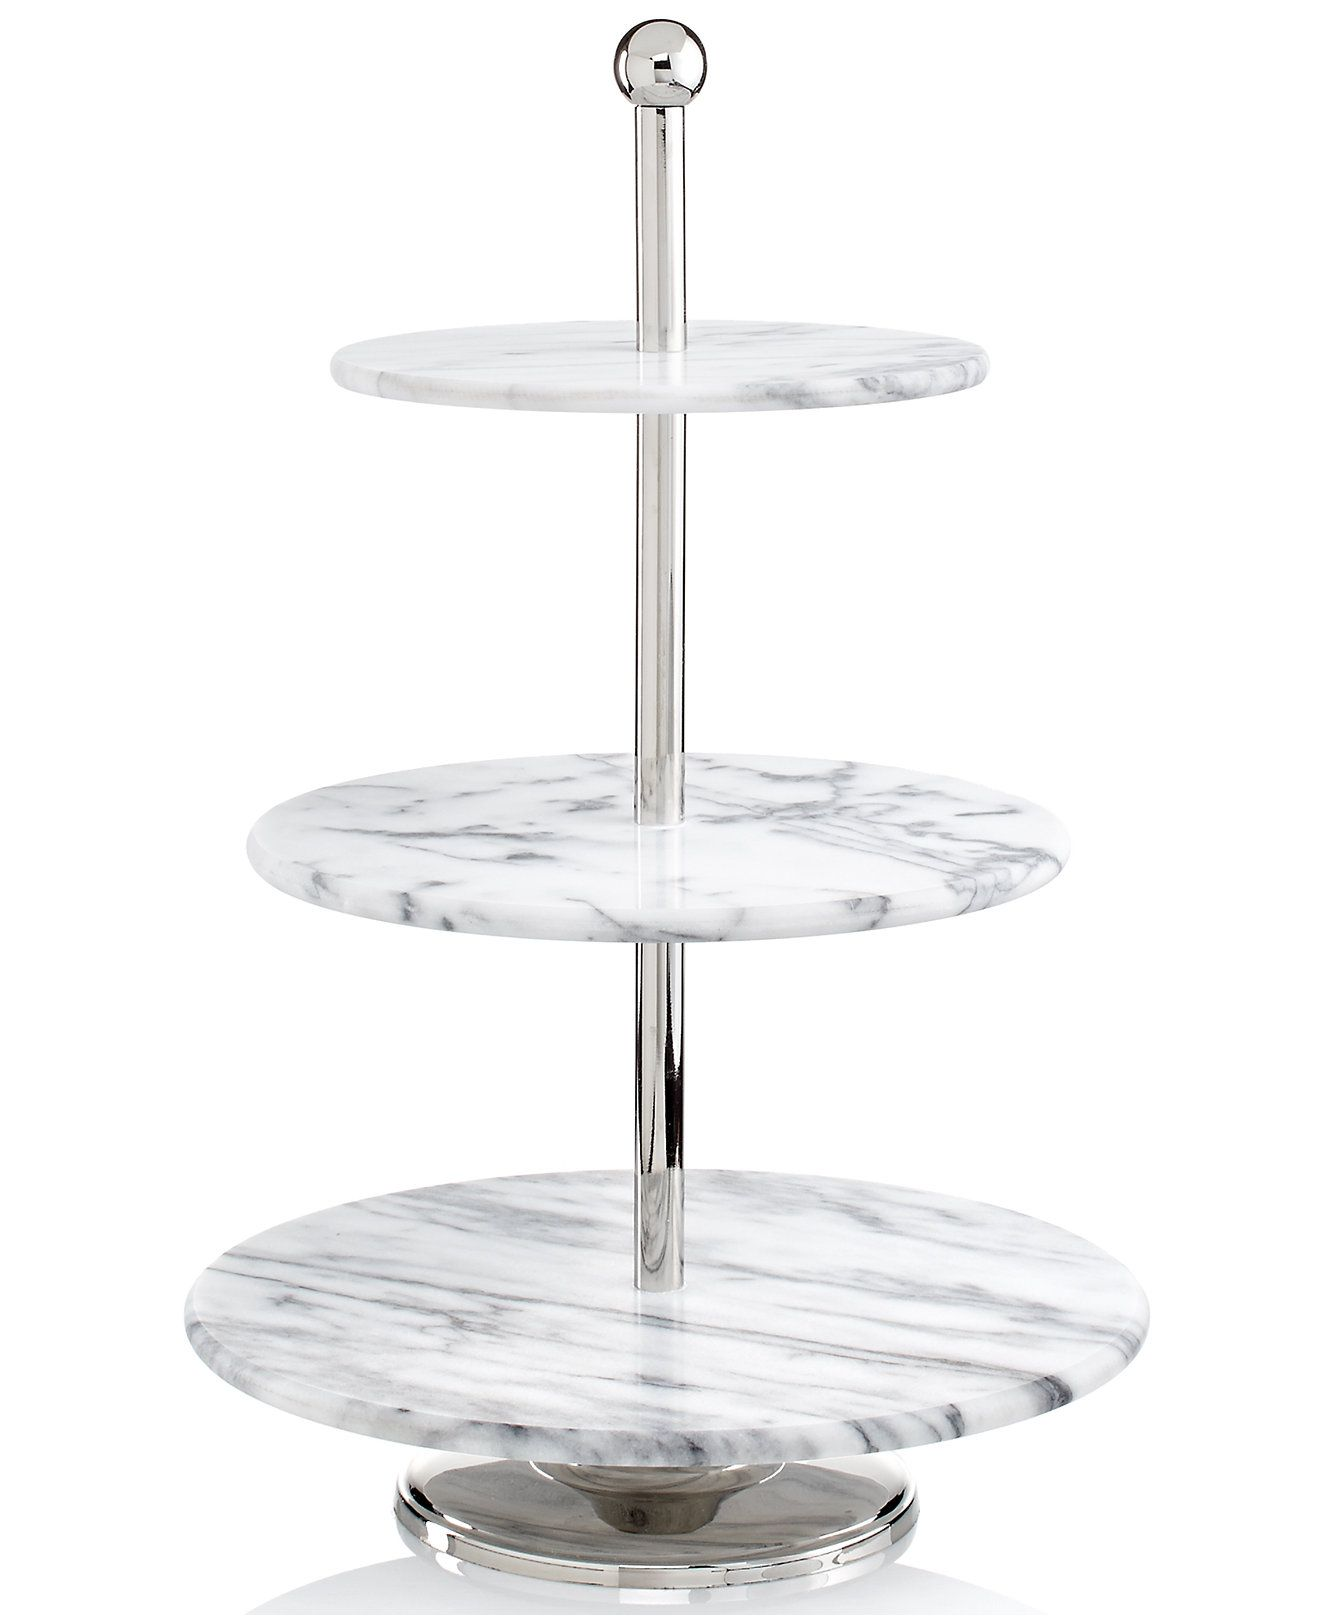 Registry Trend Marble Inspired Serveware Is Huge This Season And A 3 Tiered Piece Adds Height And Variety To Your Table Tiered Server Marble Decor Serveware